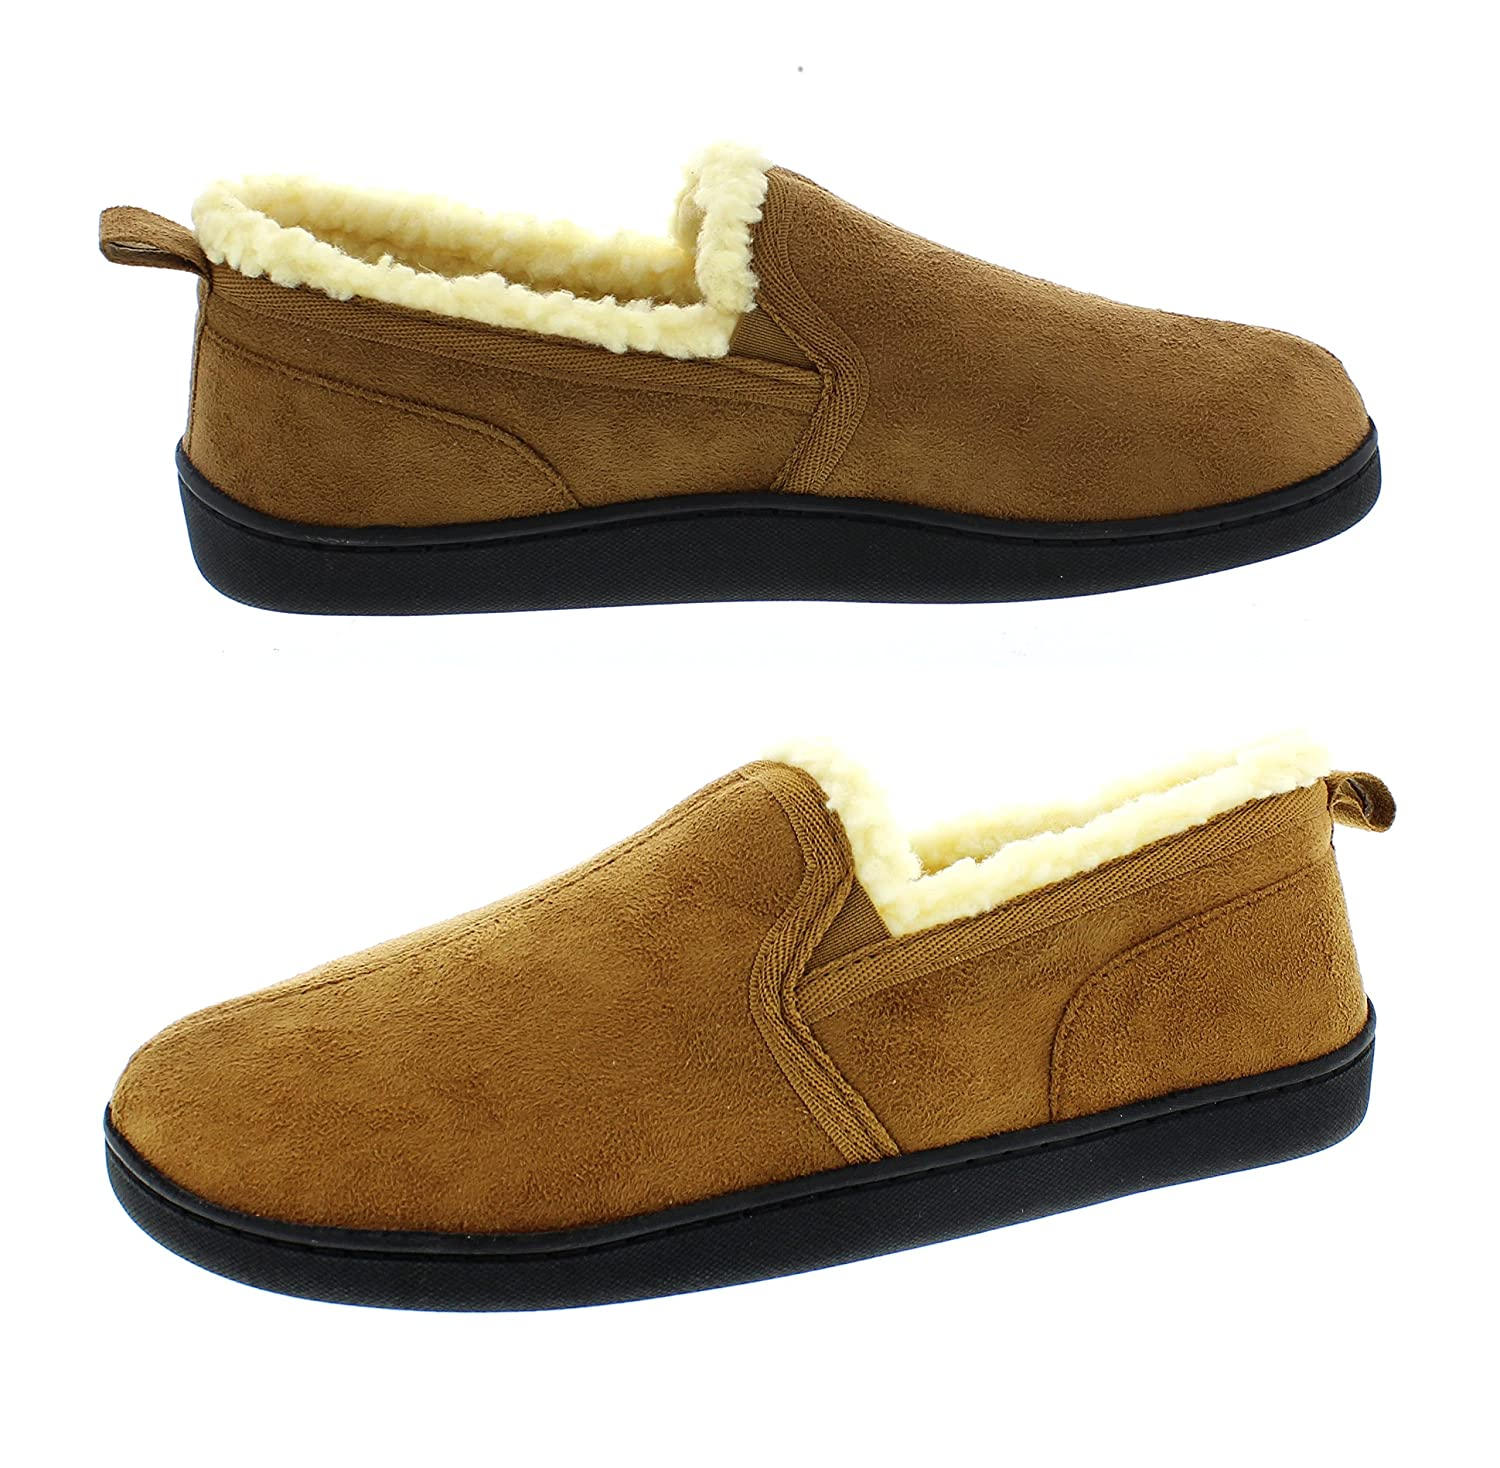 2b7625d9cb384 Amazon.com   Gold Toe Mens Moccasin House Shoes, Indoor Outdoor Bedroom  Slippers for Men, Memory Foam   Slippers